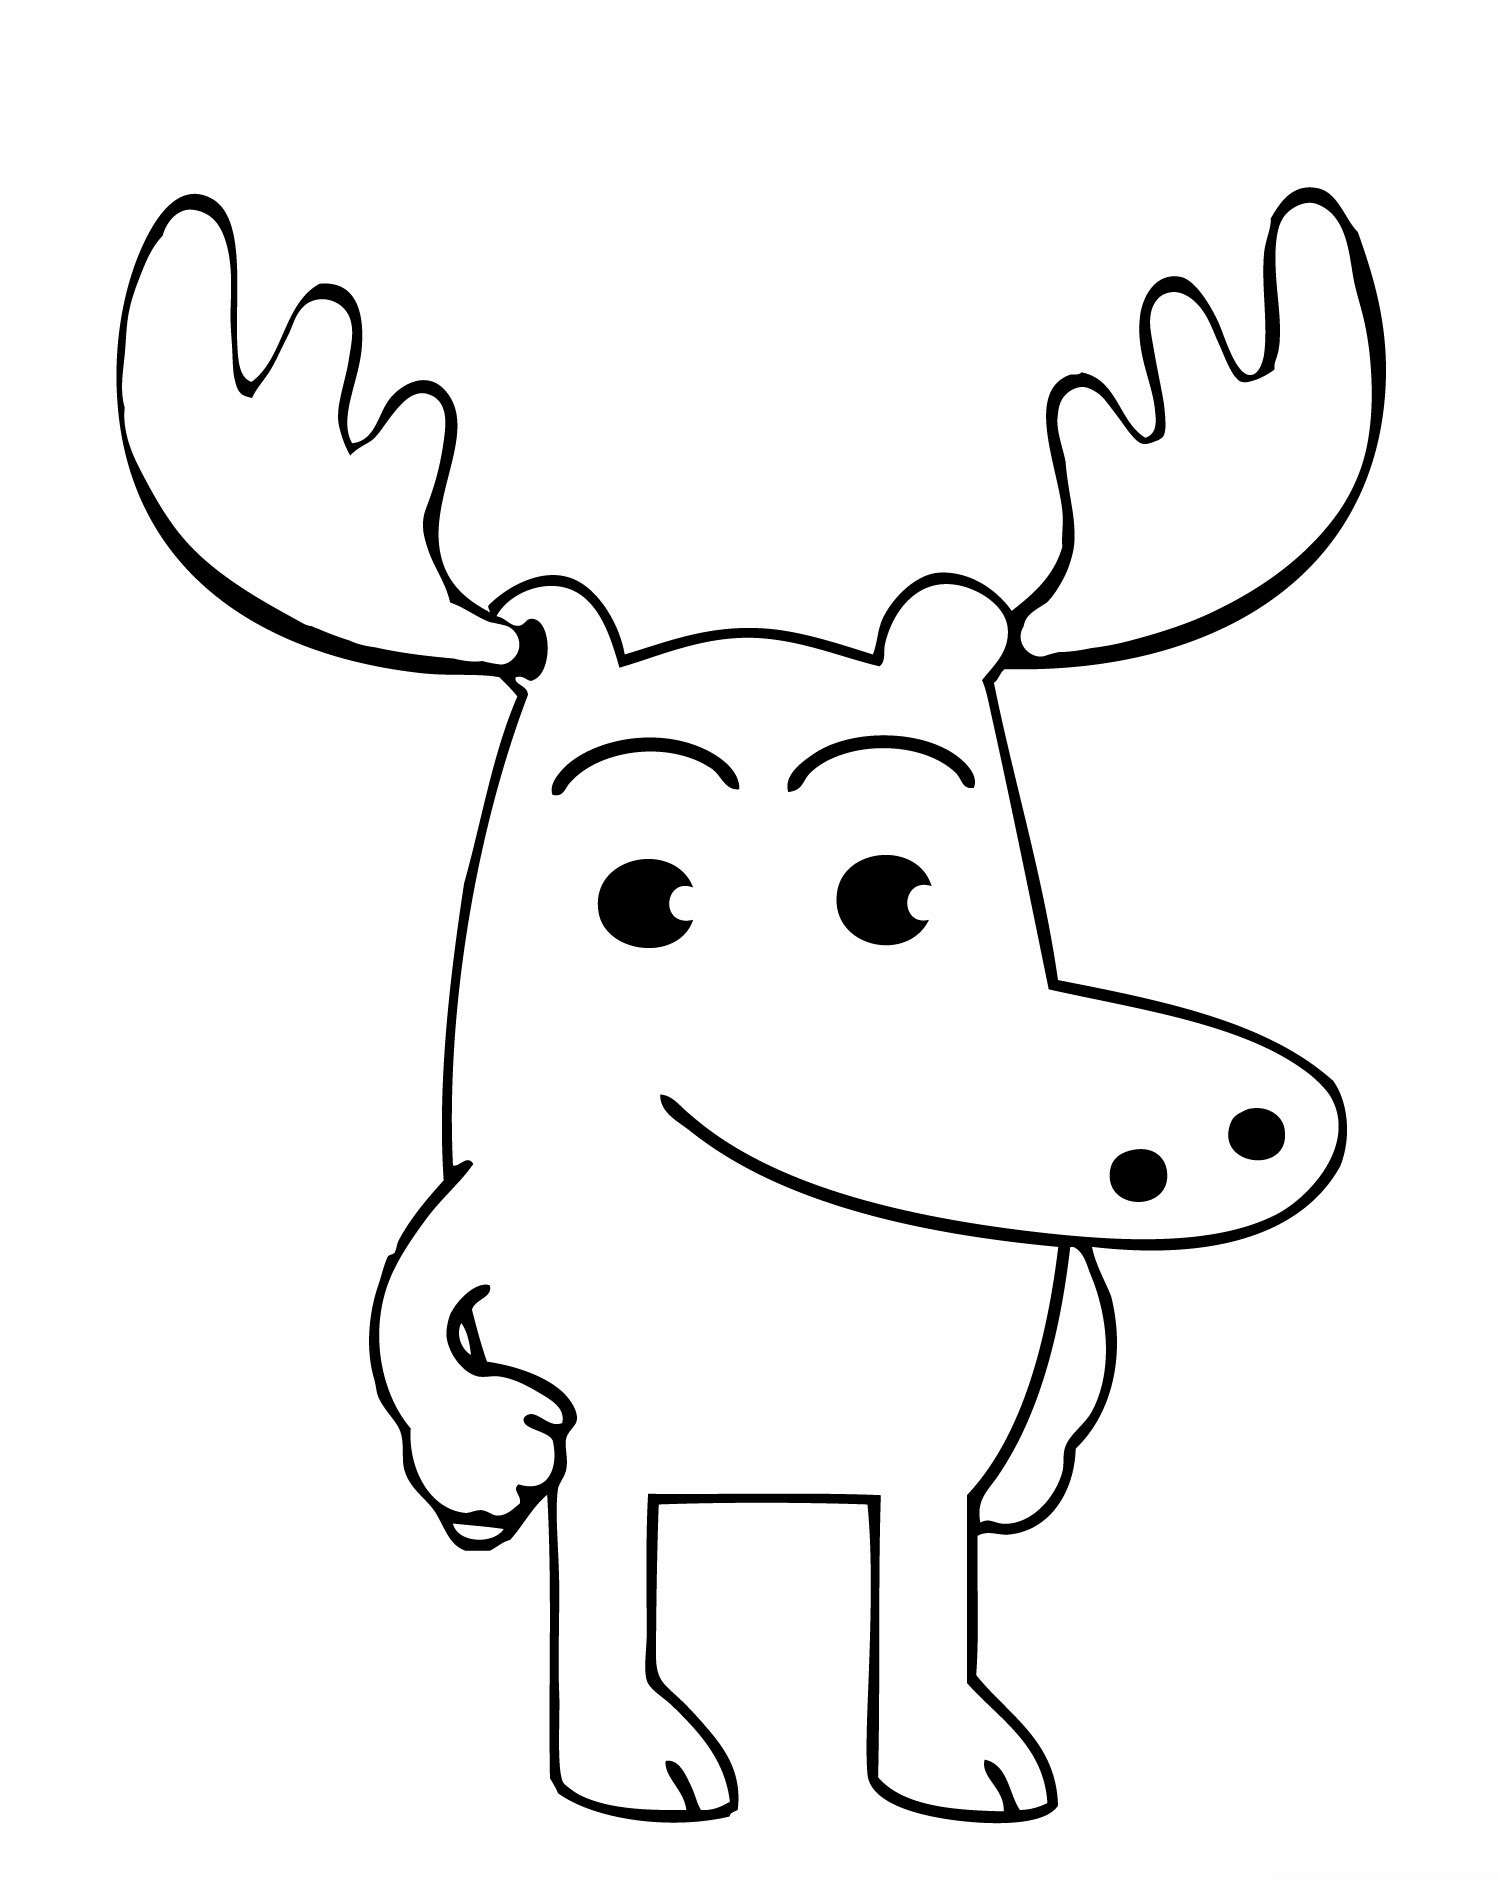 moose coloring cartoon moose coloring pages coloring home moose coloring